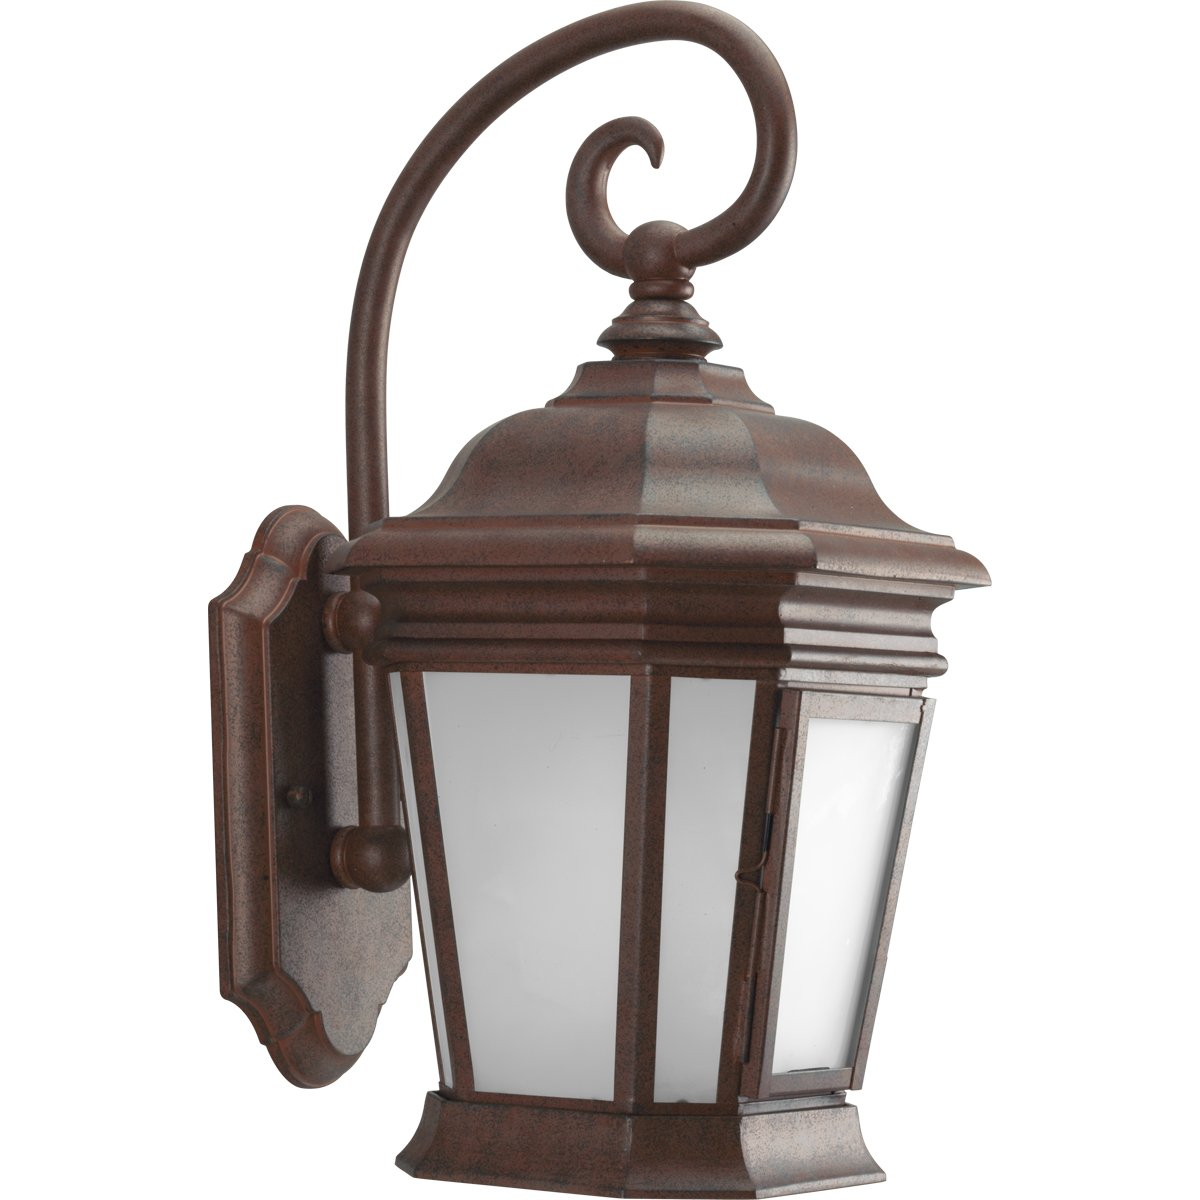 Progress Lighting P5686-33EB One-Light Etched Glass Wall Lantern with Photocell and 120 Volt Normal Power Factor Electronic Ballast, Cobblestone